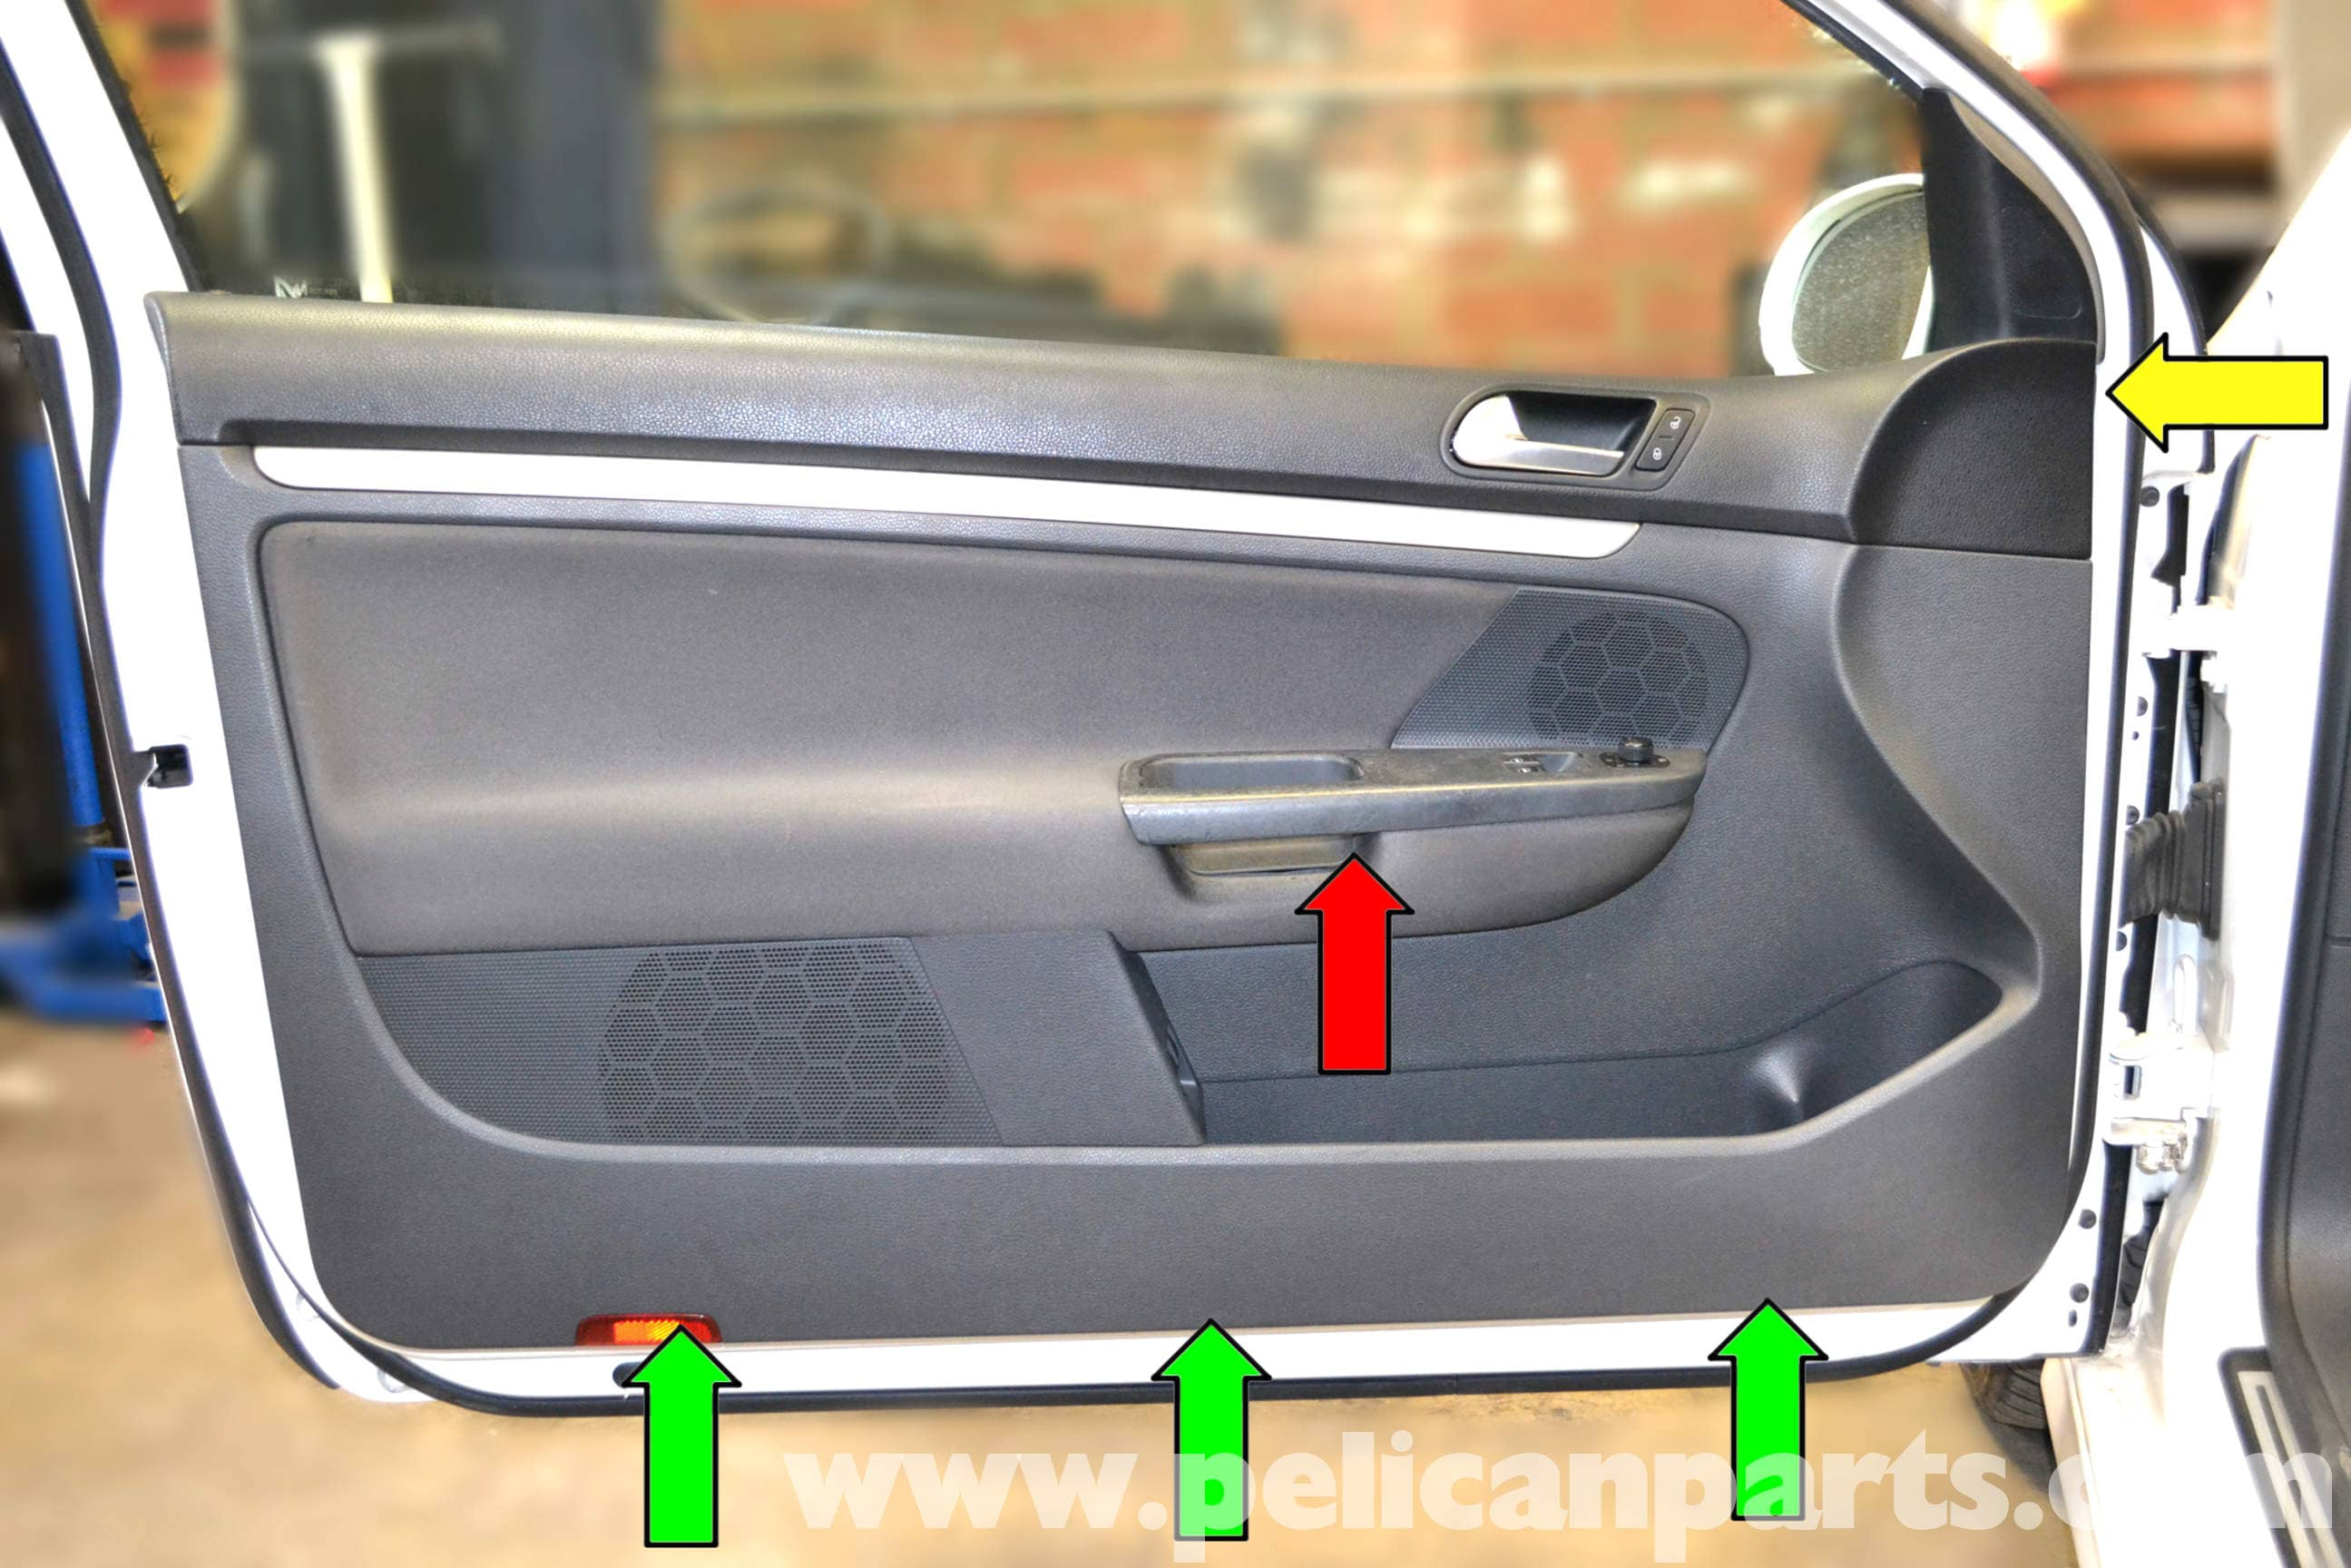 Volkswagen Golf Gti Mk V Front Door Panel Removal 2006